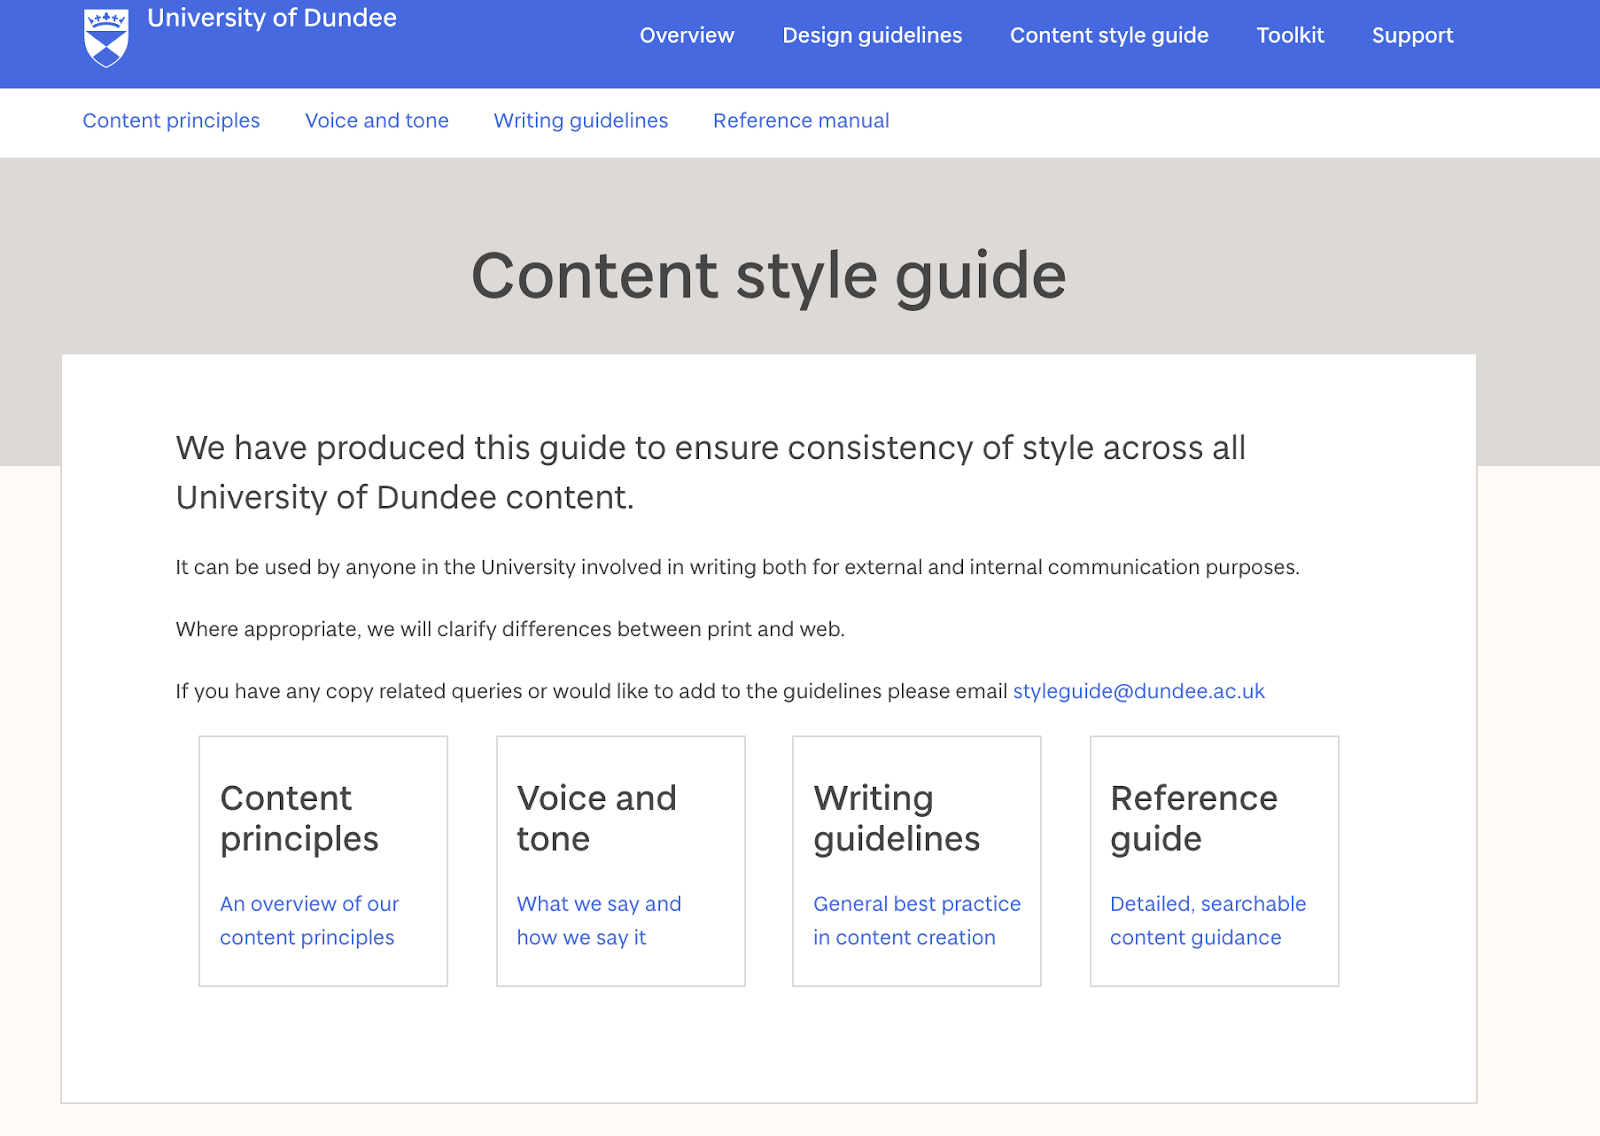 A screenshot of the University of Dundee content style guide. This is an online guide and the image is the main page with content style guide as the main heading and navigation items such as content principles, voice and tone, writing guidelines and reference manual.